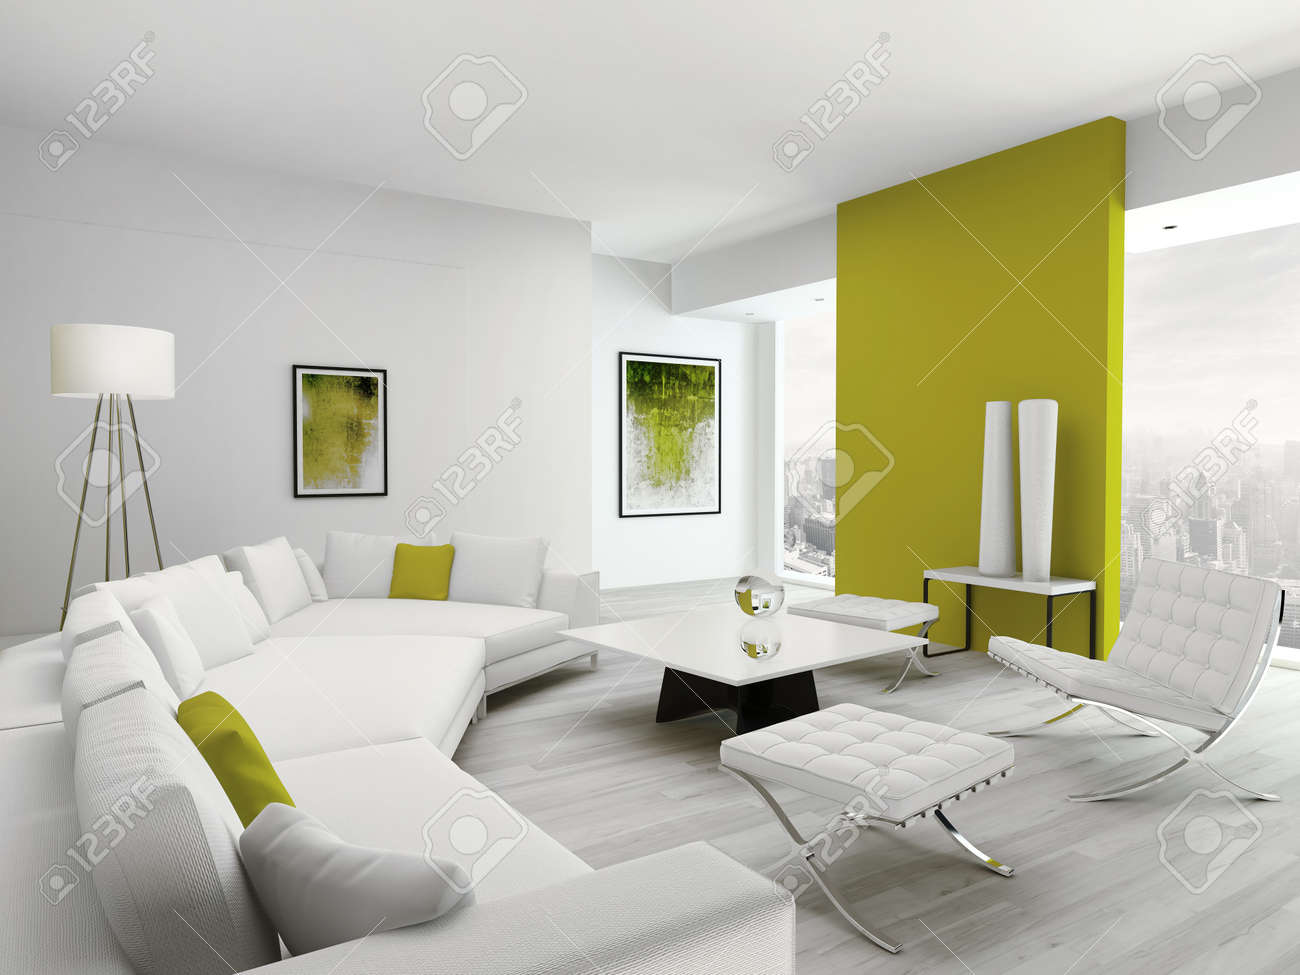 Luxury Design White Living Room Interior With Modern Furniture ...